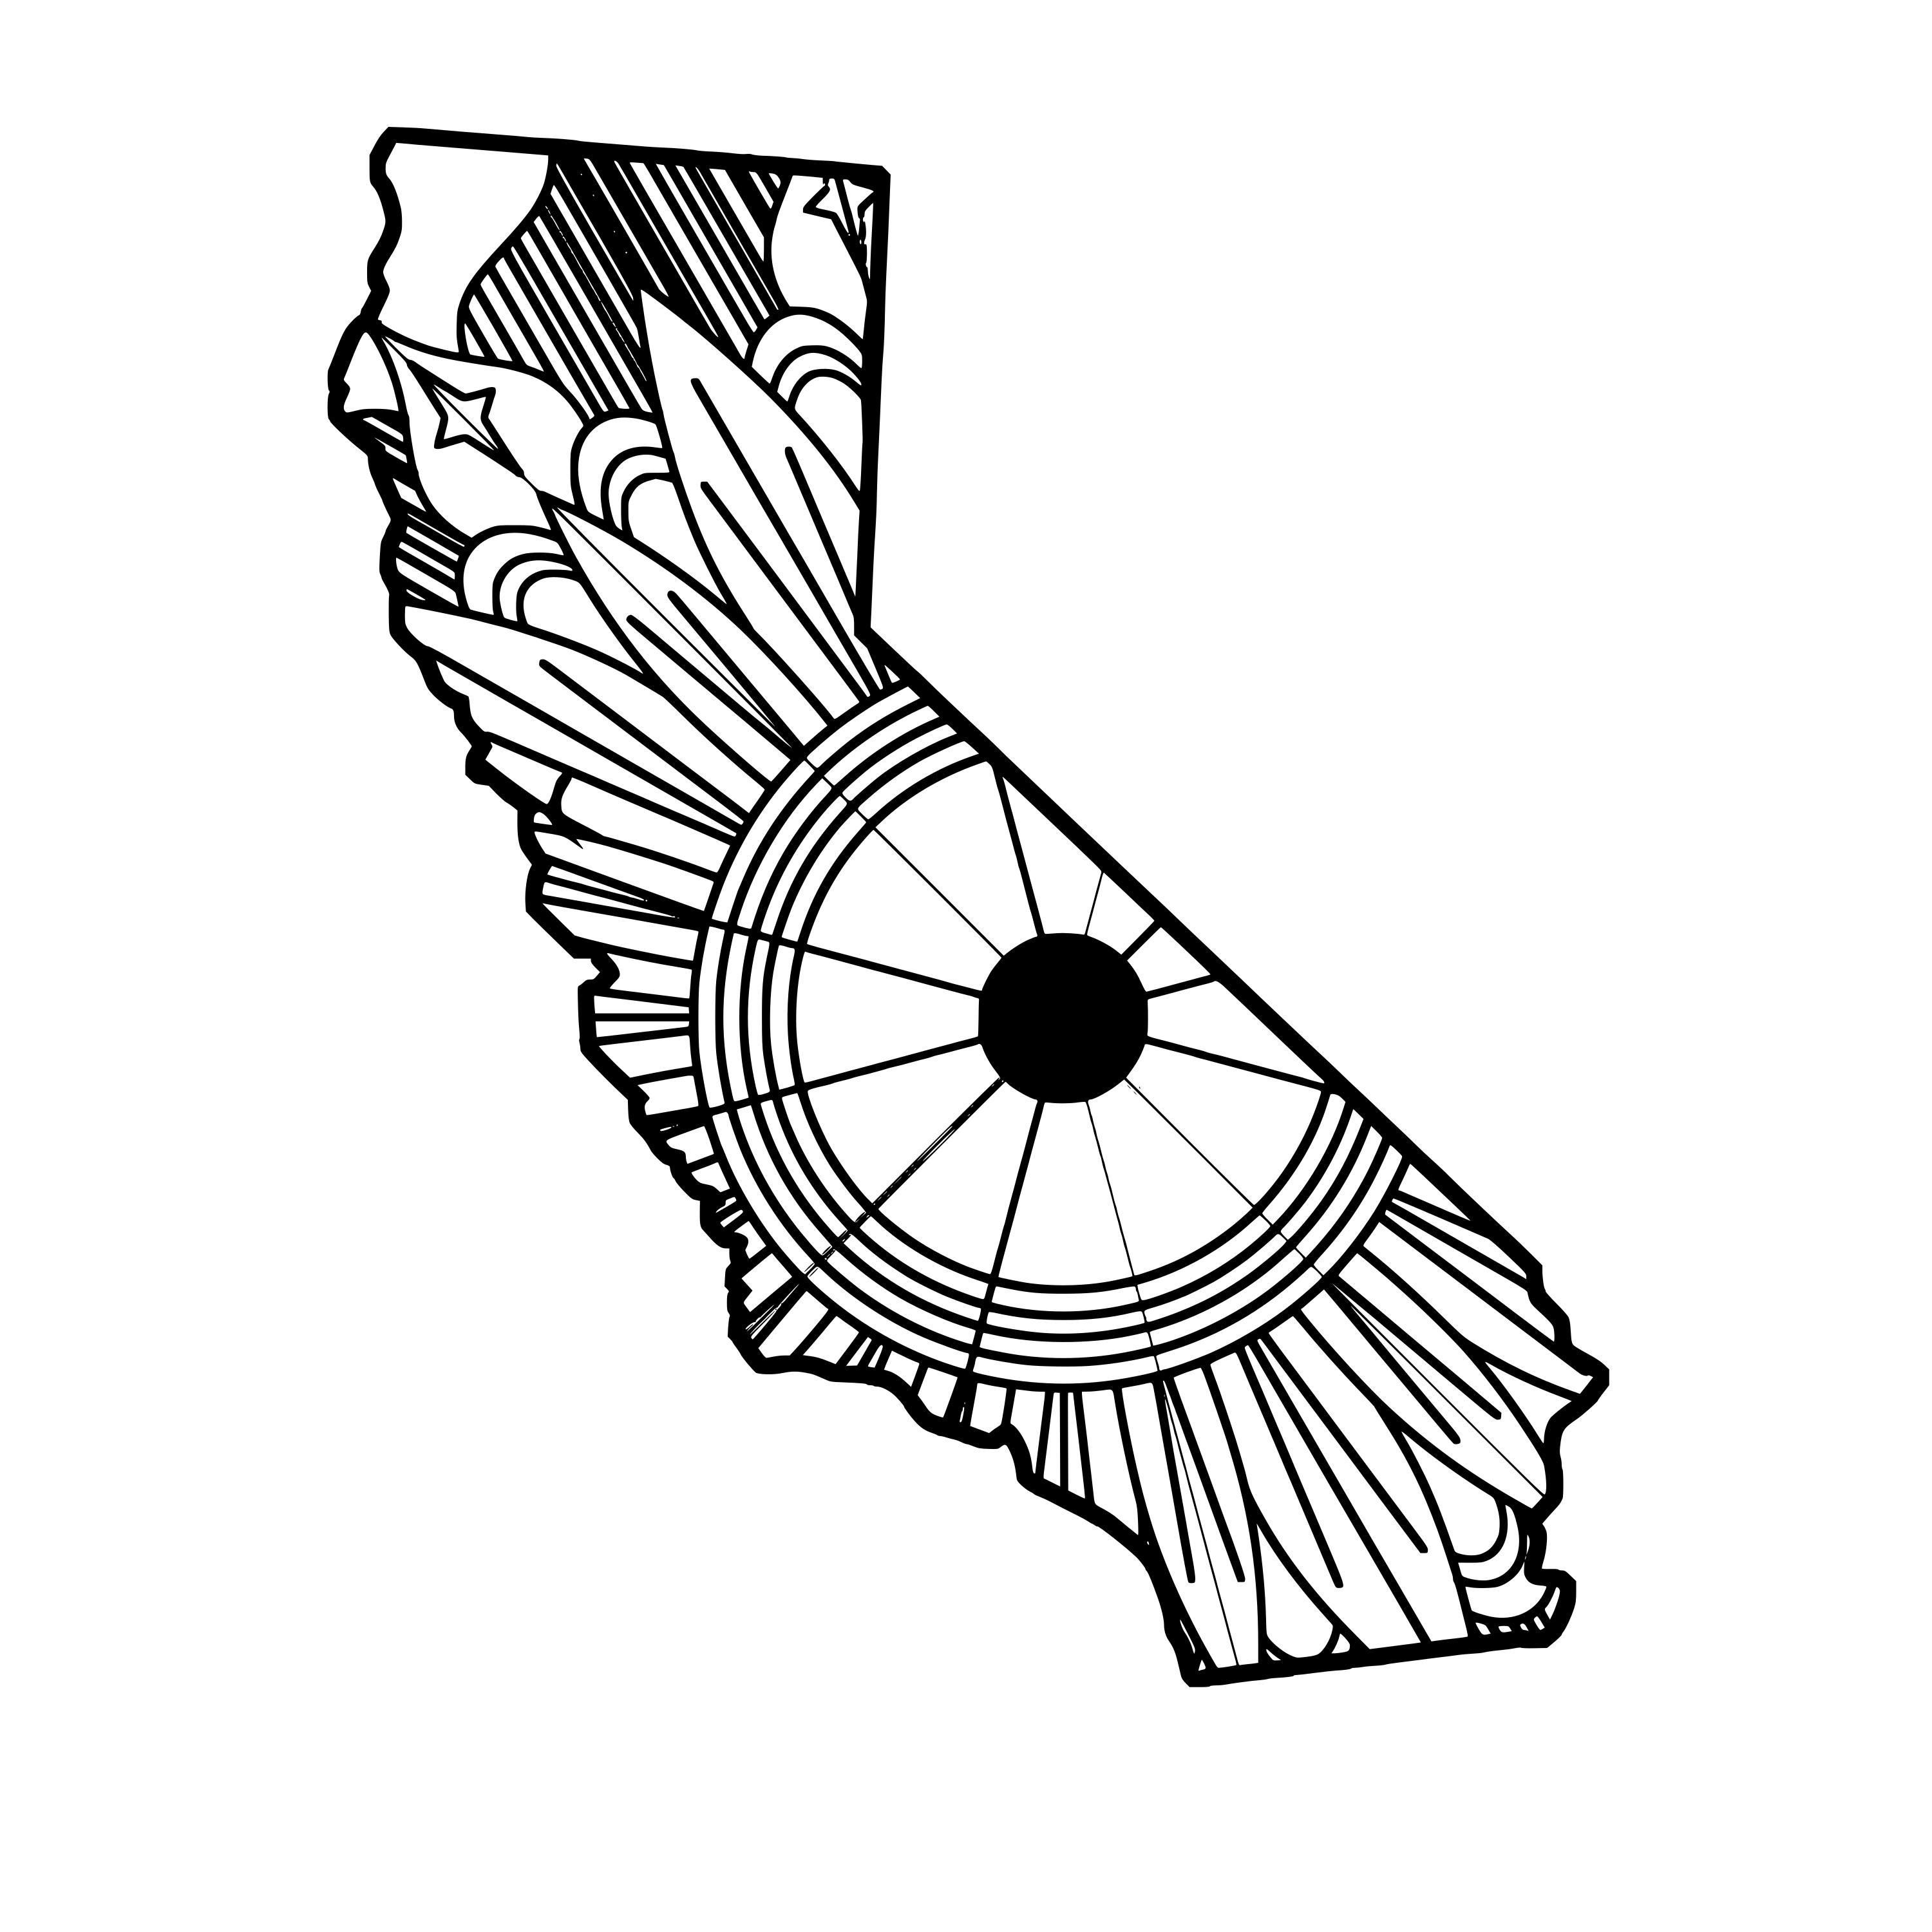 3000x3000 california map mandala mandala california map, mandala, map